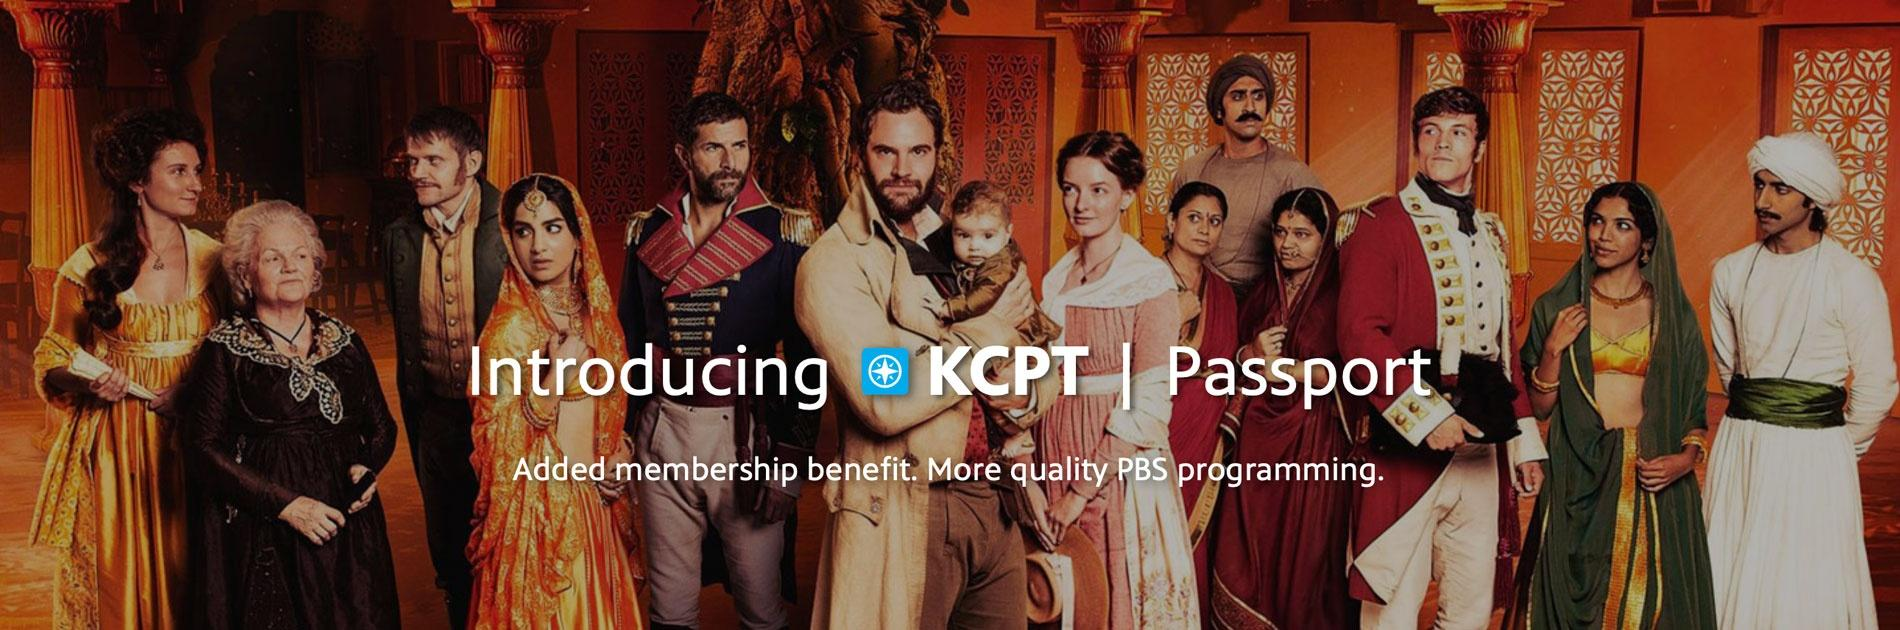 Beecham House cast - Introducing KCPT Passport - Added membership benefit. More quality PBS programming.